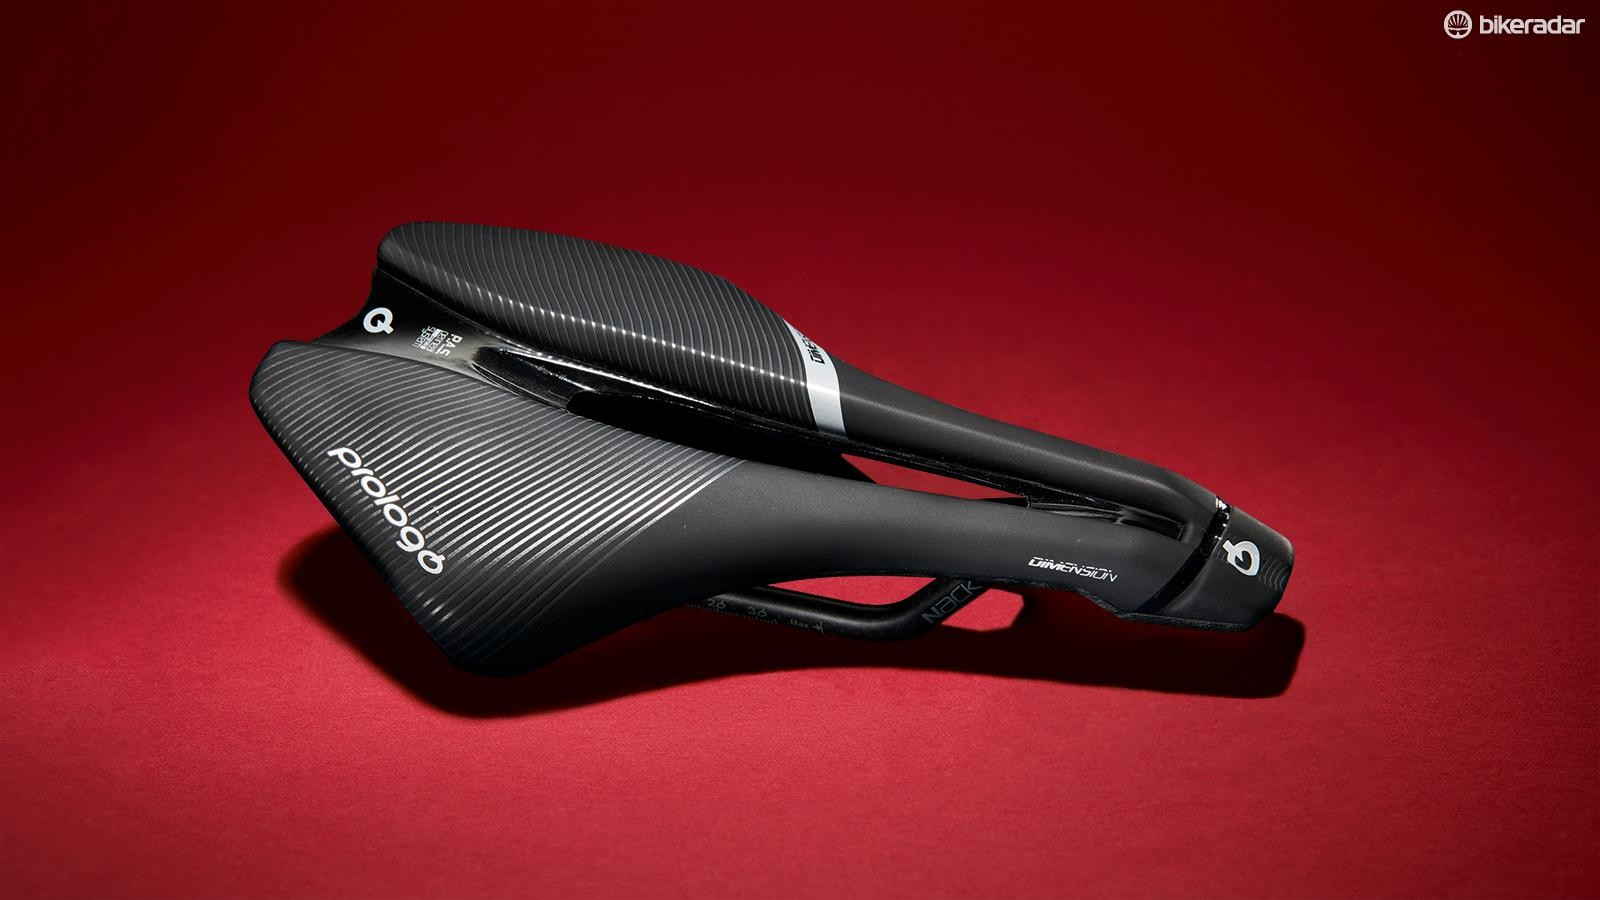 Prologo's Dimension Nack saddle